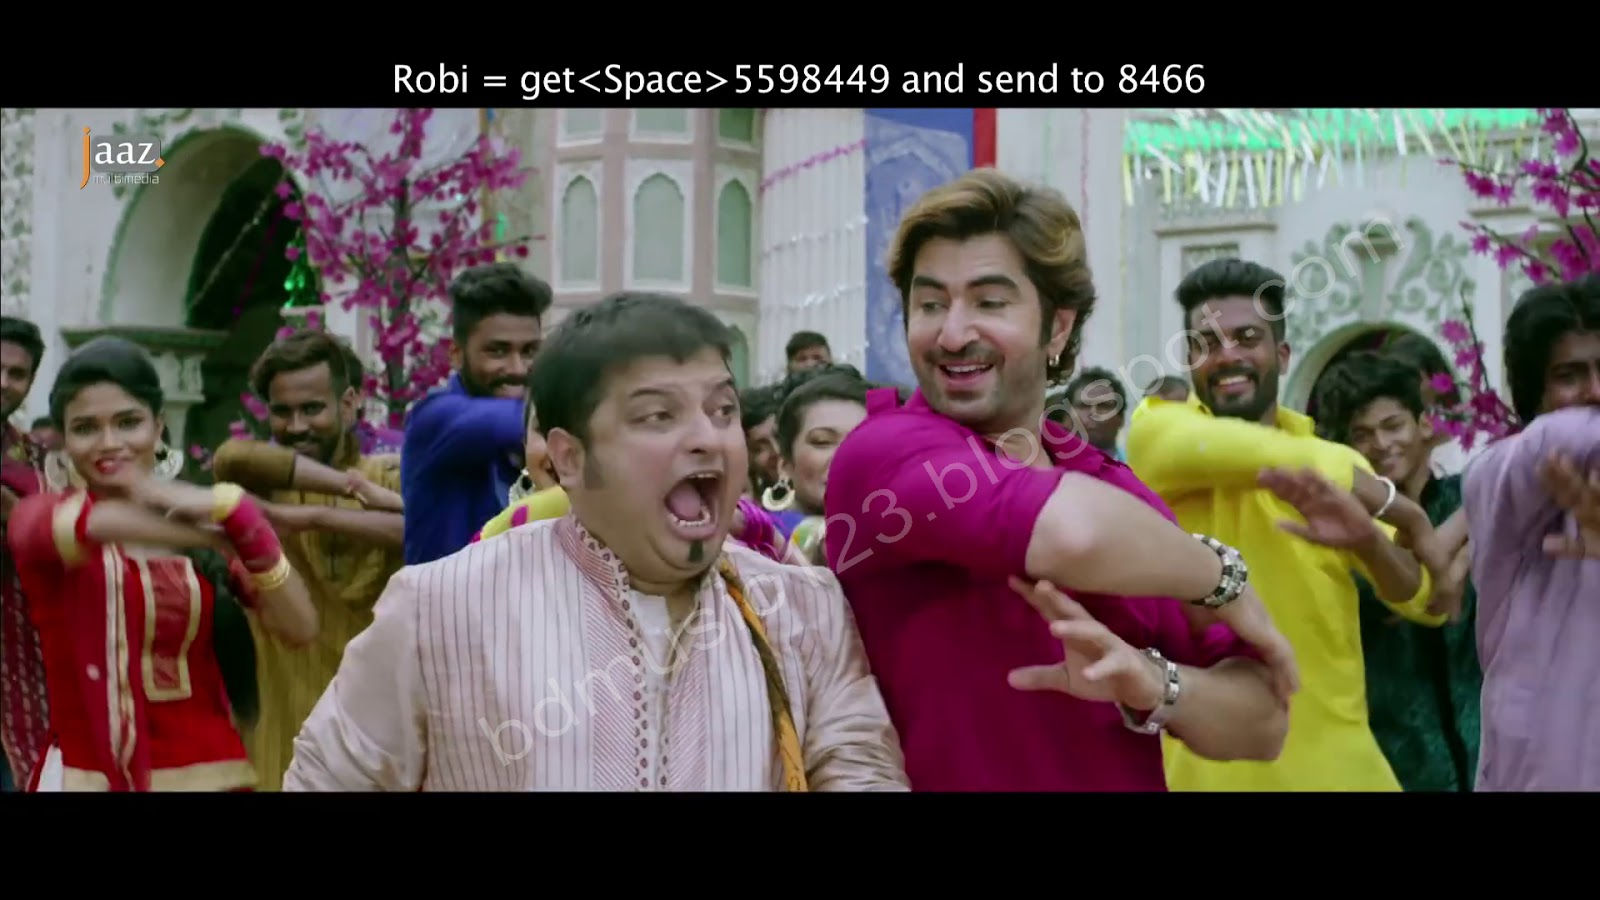 Mubarak Eid Mubarak Full Video Song Mp4 Badsha Bengali Movie Jeet Nusrat Faria Baba Yadav Free Download Bd Music 123 Bangla